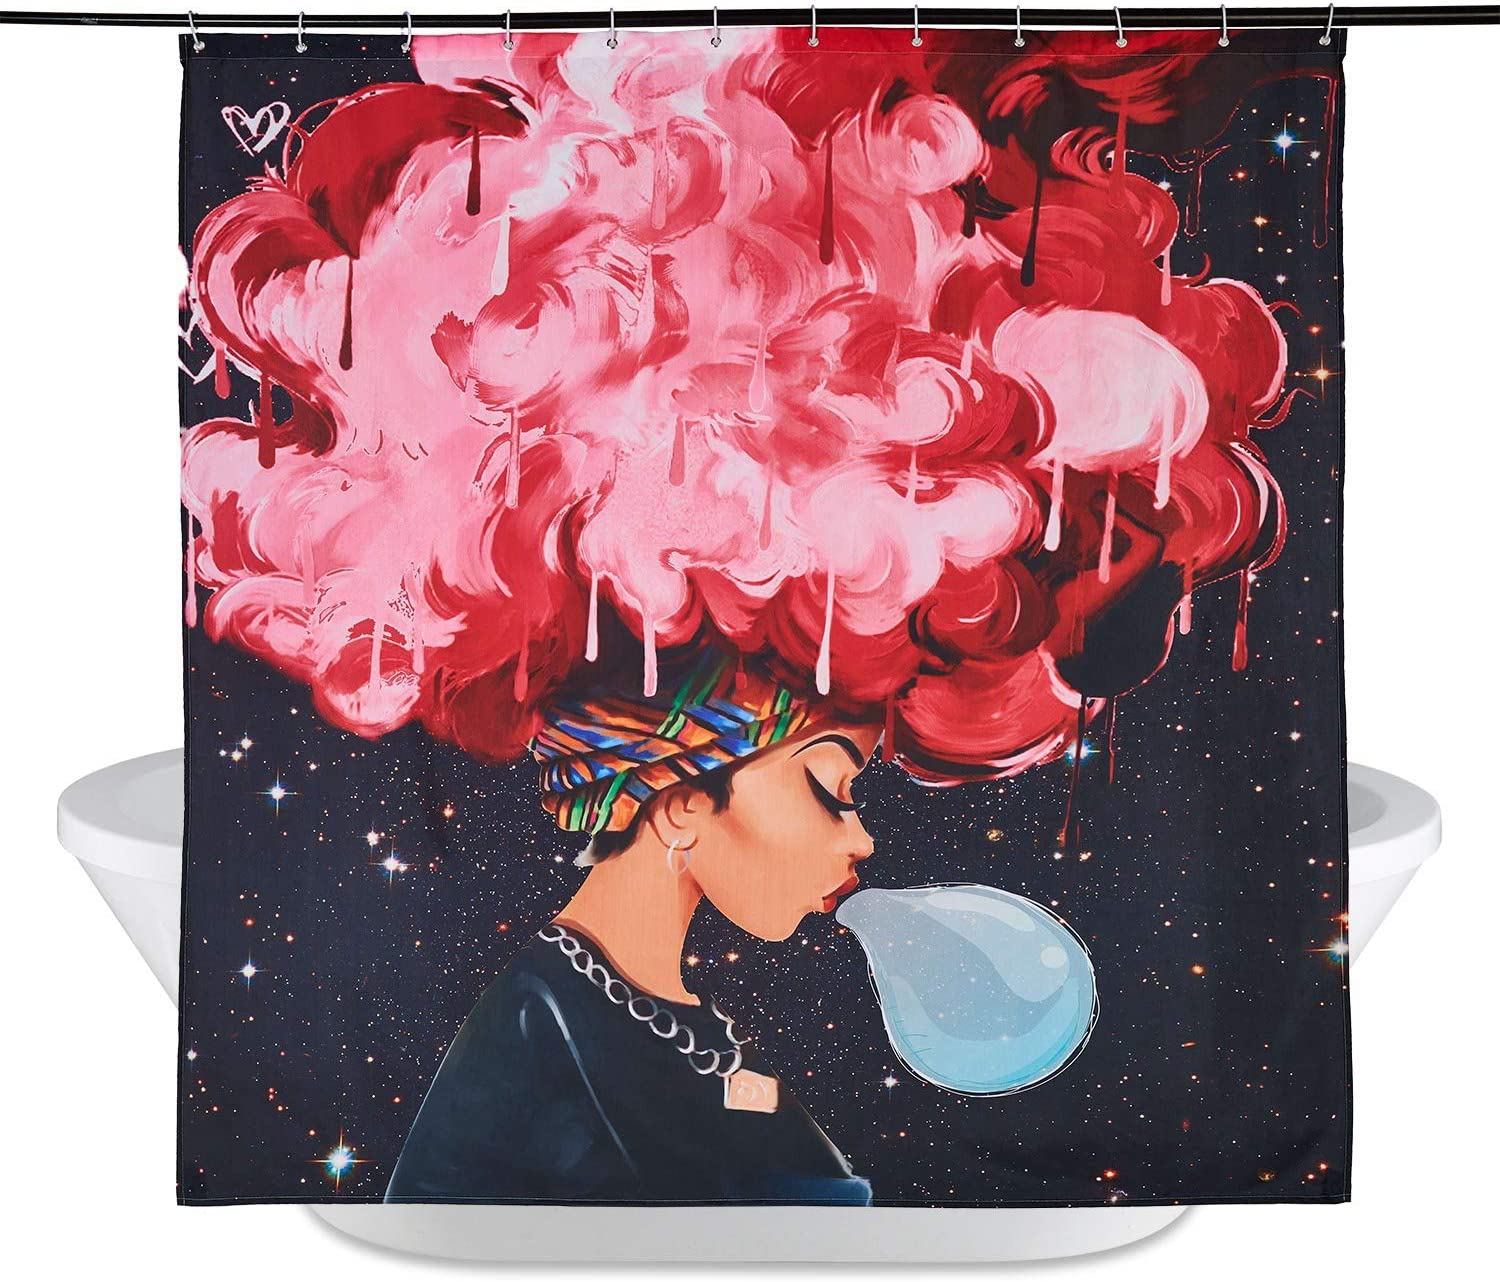 Blue Hair Afro Girl. UniTendo African American 3D Retro Style Print Waterproof Polyester Shower Curtain with 12 Hooks for Bathroom Decor,72 x 72 inches